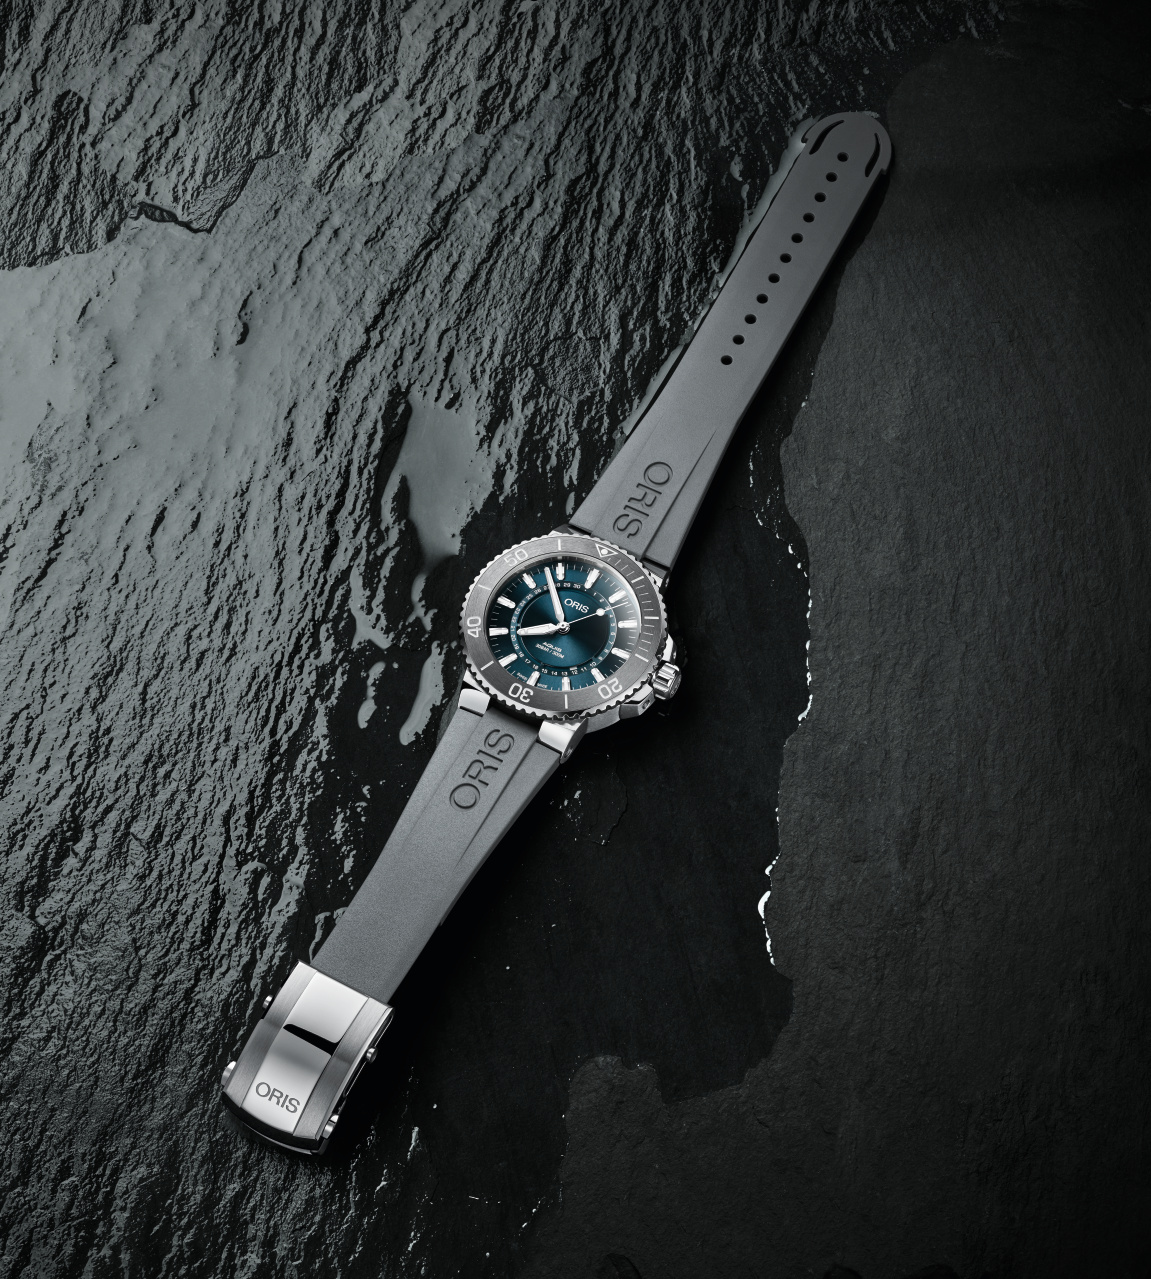 ... close to the village of Hölstein where Oris has been based since 1904 443bab361d